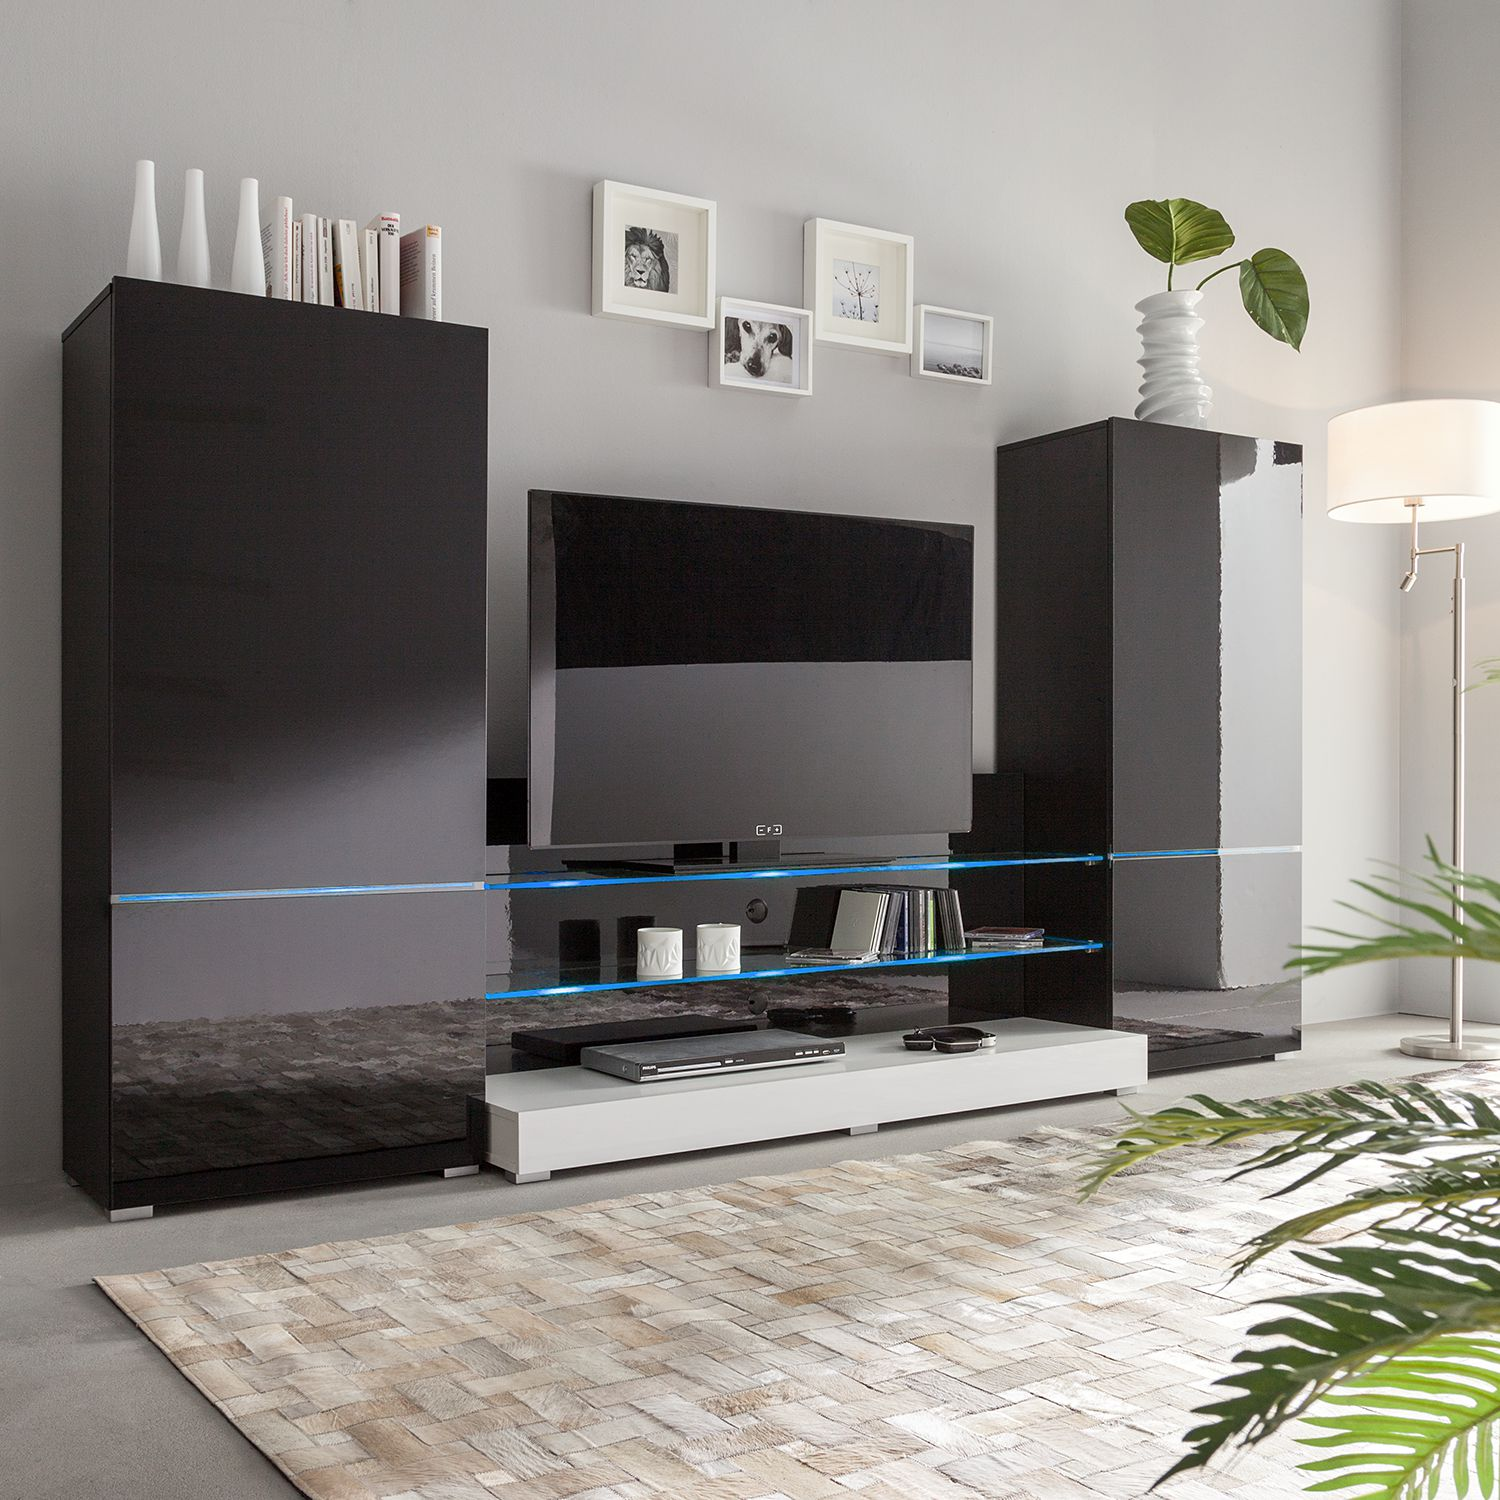 wohnwand modern g nstig kaufen. Black Bedroom Furniture Sets. Home Design Ideas